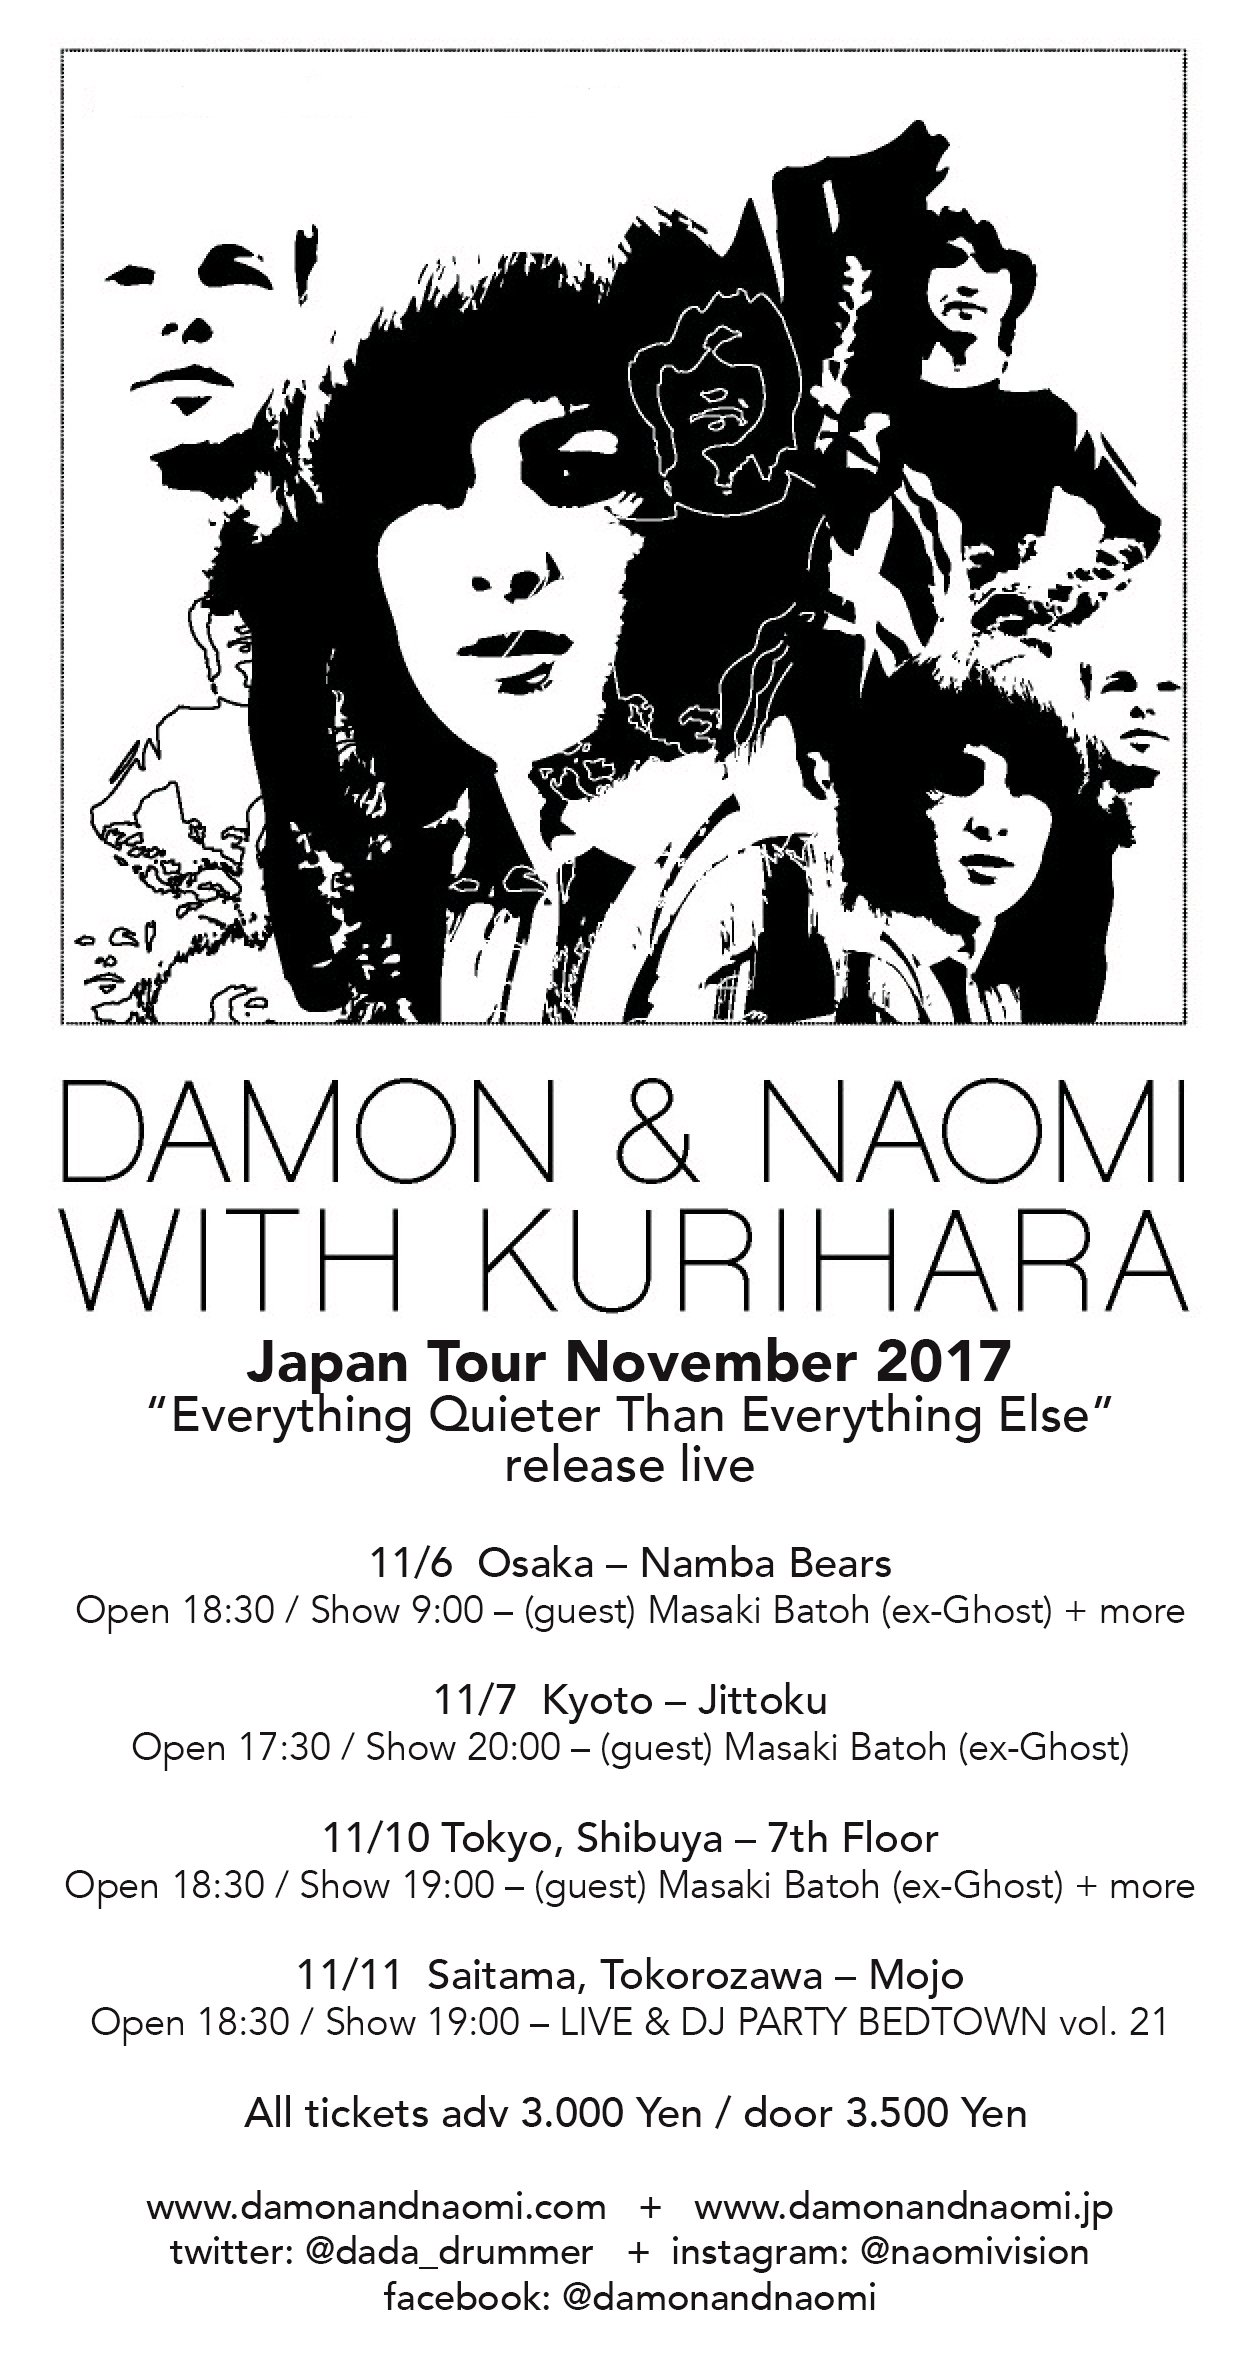 Poster for 7 November 2017 at Jittoku, Kyoto, Japan